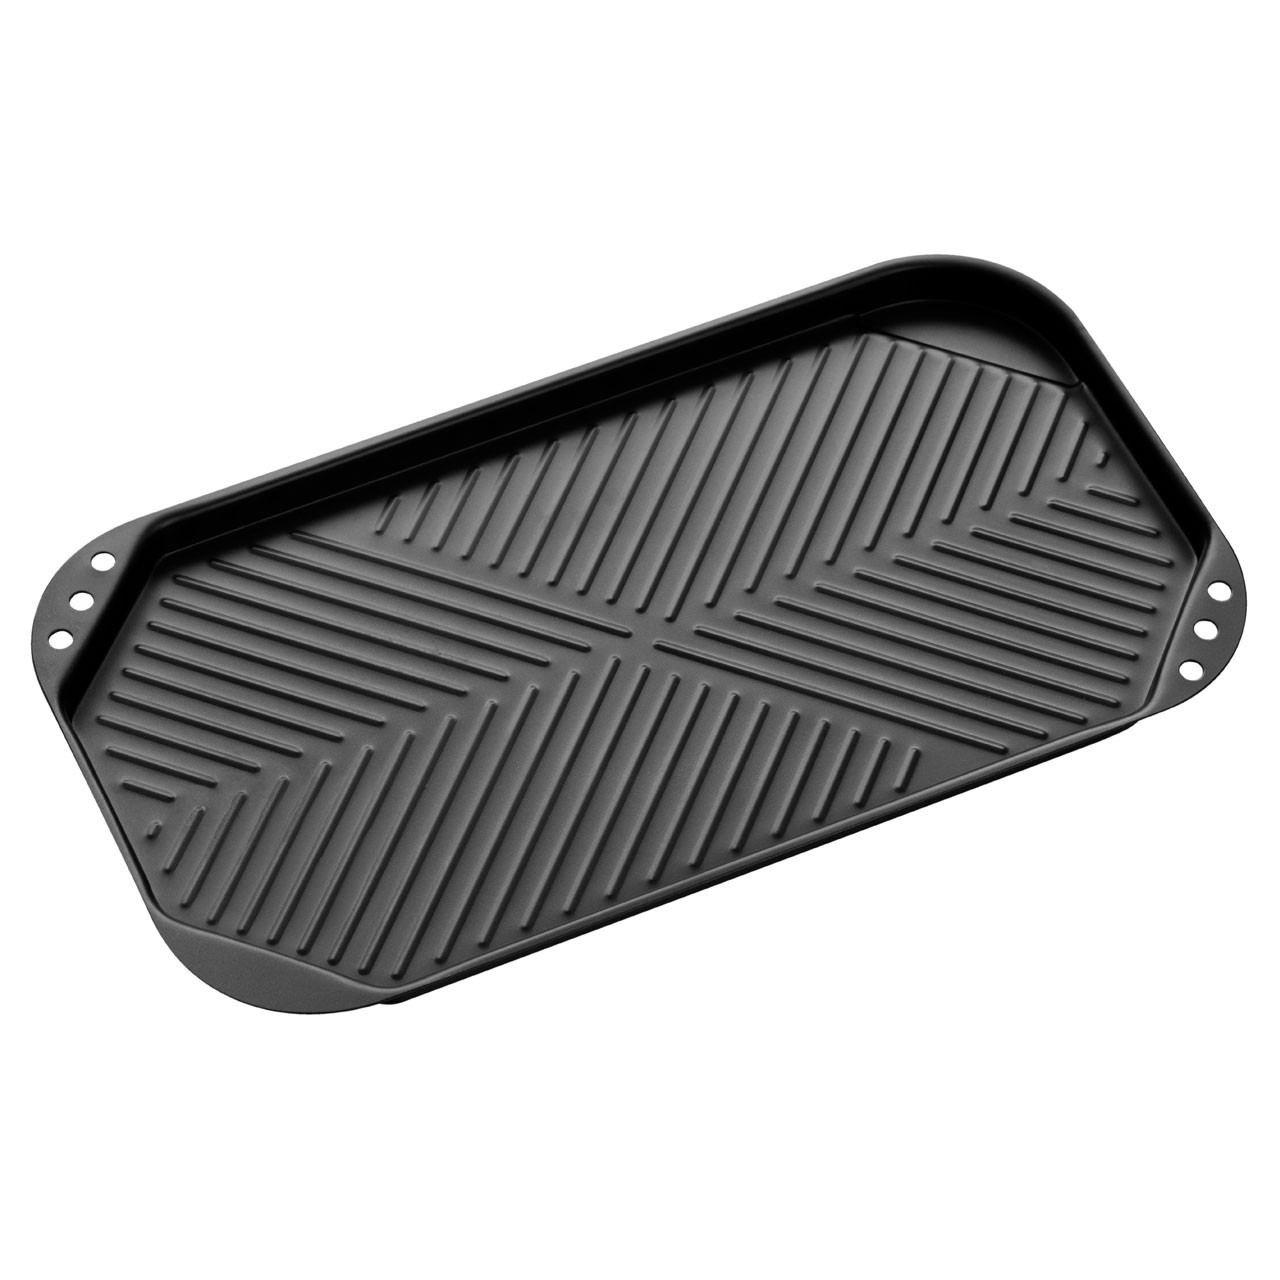 Prime Furnishing Twin Hob Grill Plate Iron